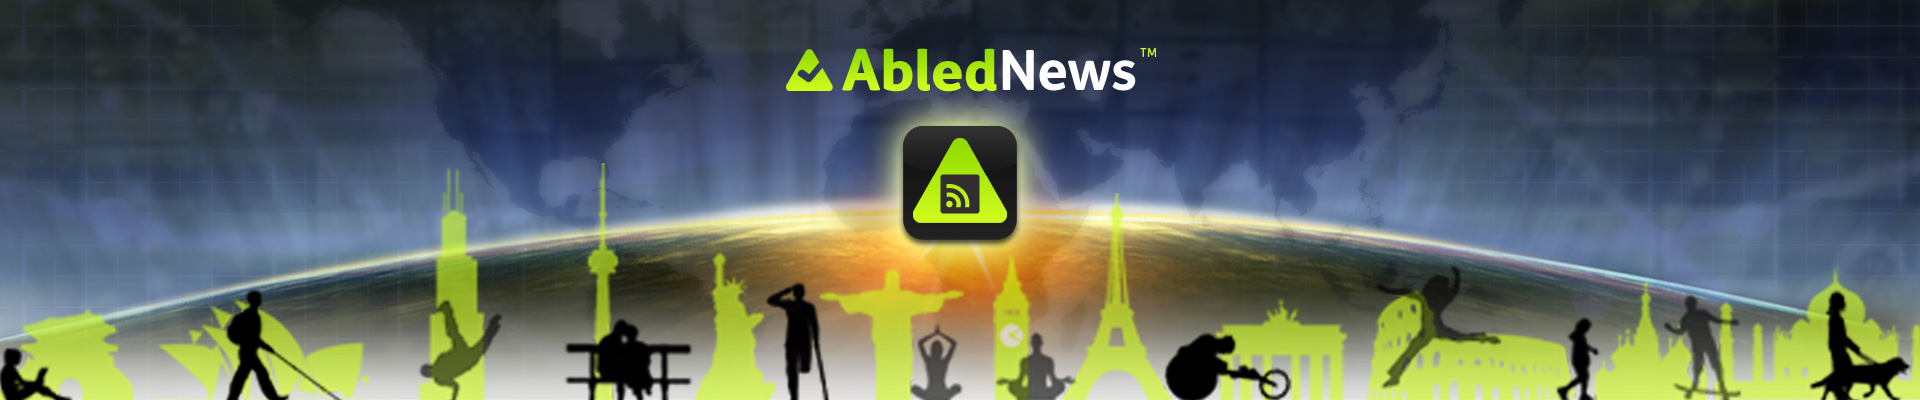 AbledNews headline banner shows the Abled logo, consisting of a light green rounded triangle with a checkmark cut out of it along with green silhouettes of iconic world landmaraks such as the Eiffel tower, Big Ben, the CN Tower and so on behind black silhouettes of variously abled people with a photo of the curve of the Earth at sunrise with bluish light reflecting upwards onto a global map in the background.